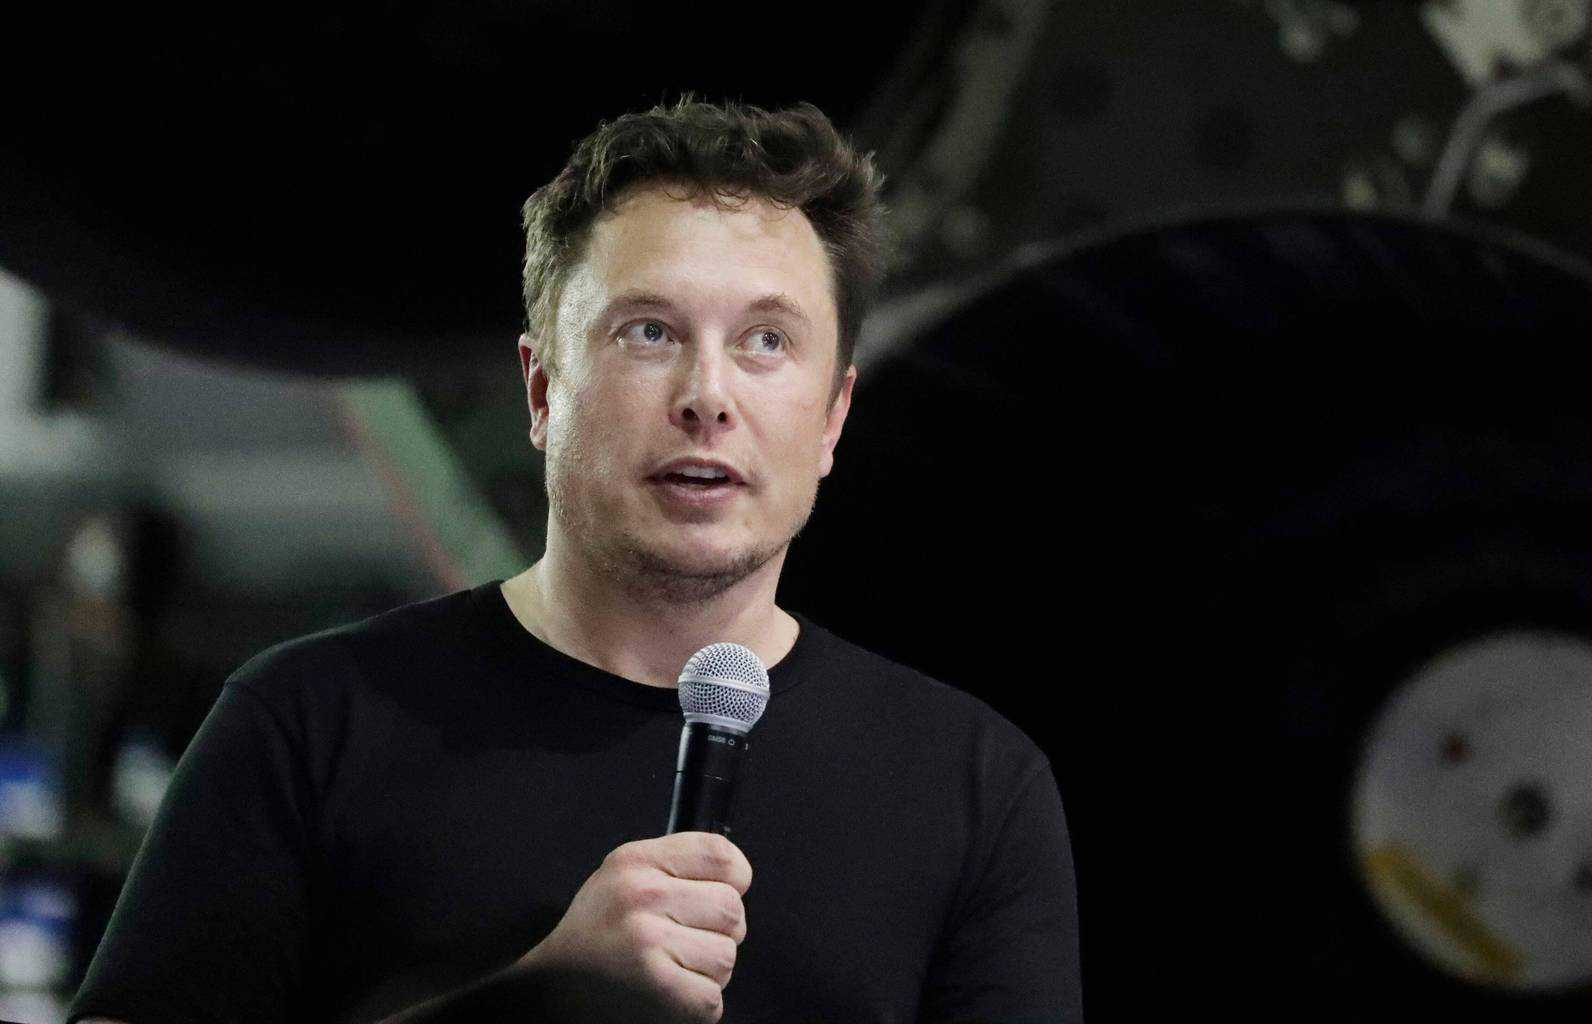 Tesla's Elon Musk Wants to Put Electrodes in People's Brains